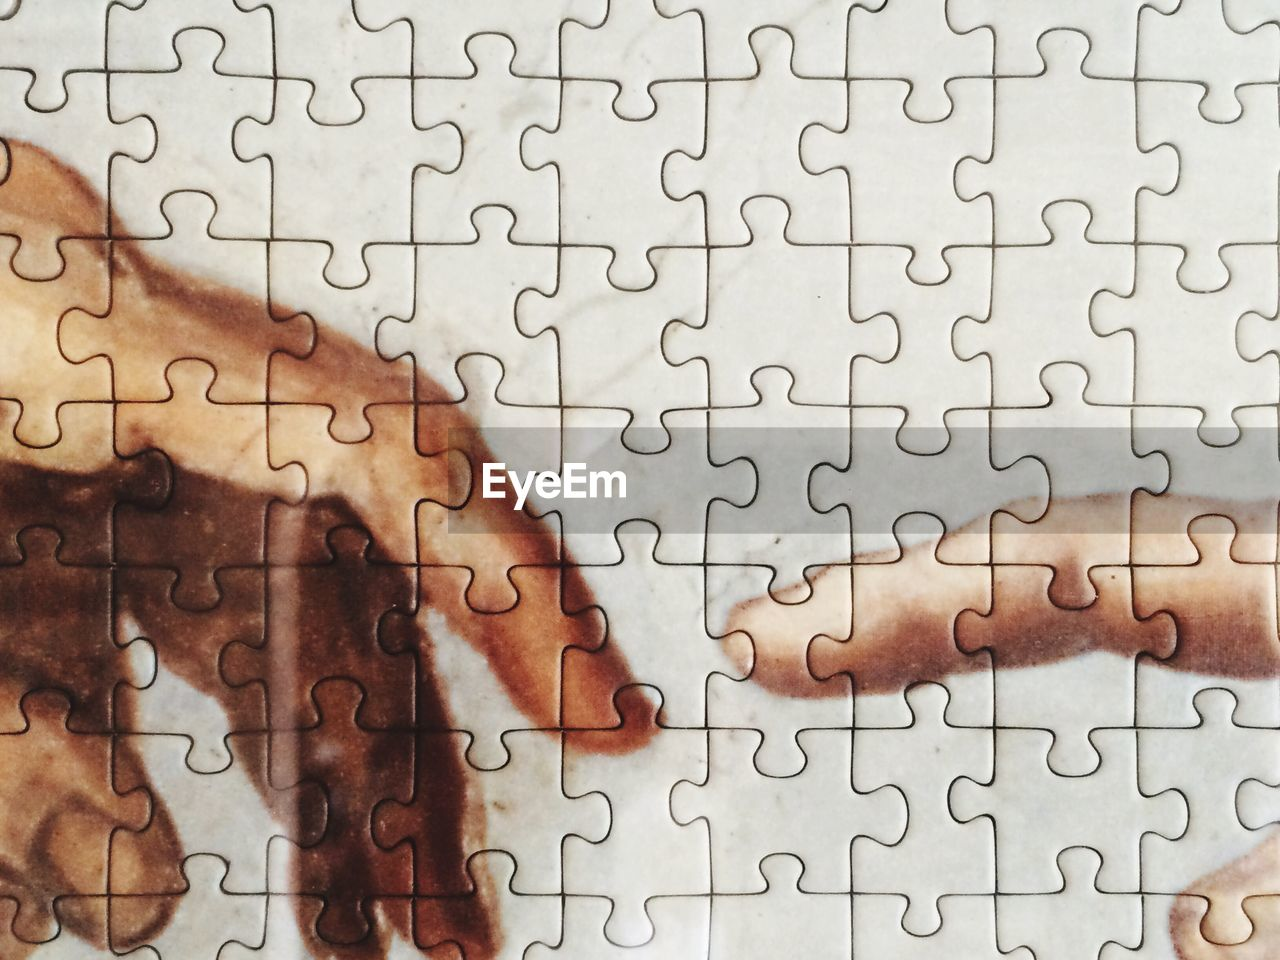 puzzle, jigsaw piece, solution, jigsaw puzzle, incomplete, pattern, connection, indoors, leisure games, strategy, relaxation, full frame, no people, design, large group of objects, finishing, shape, backgrounds, leisure activity, complexity, order, inserting